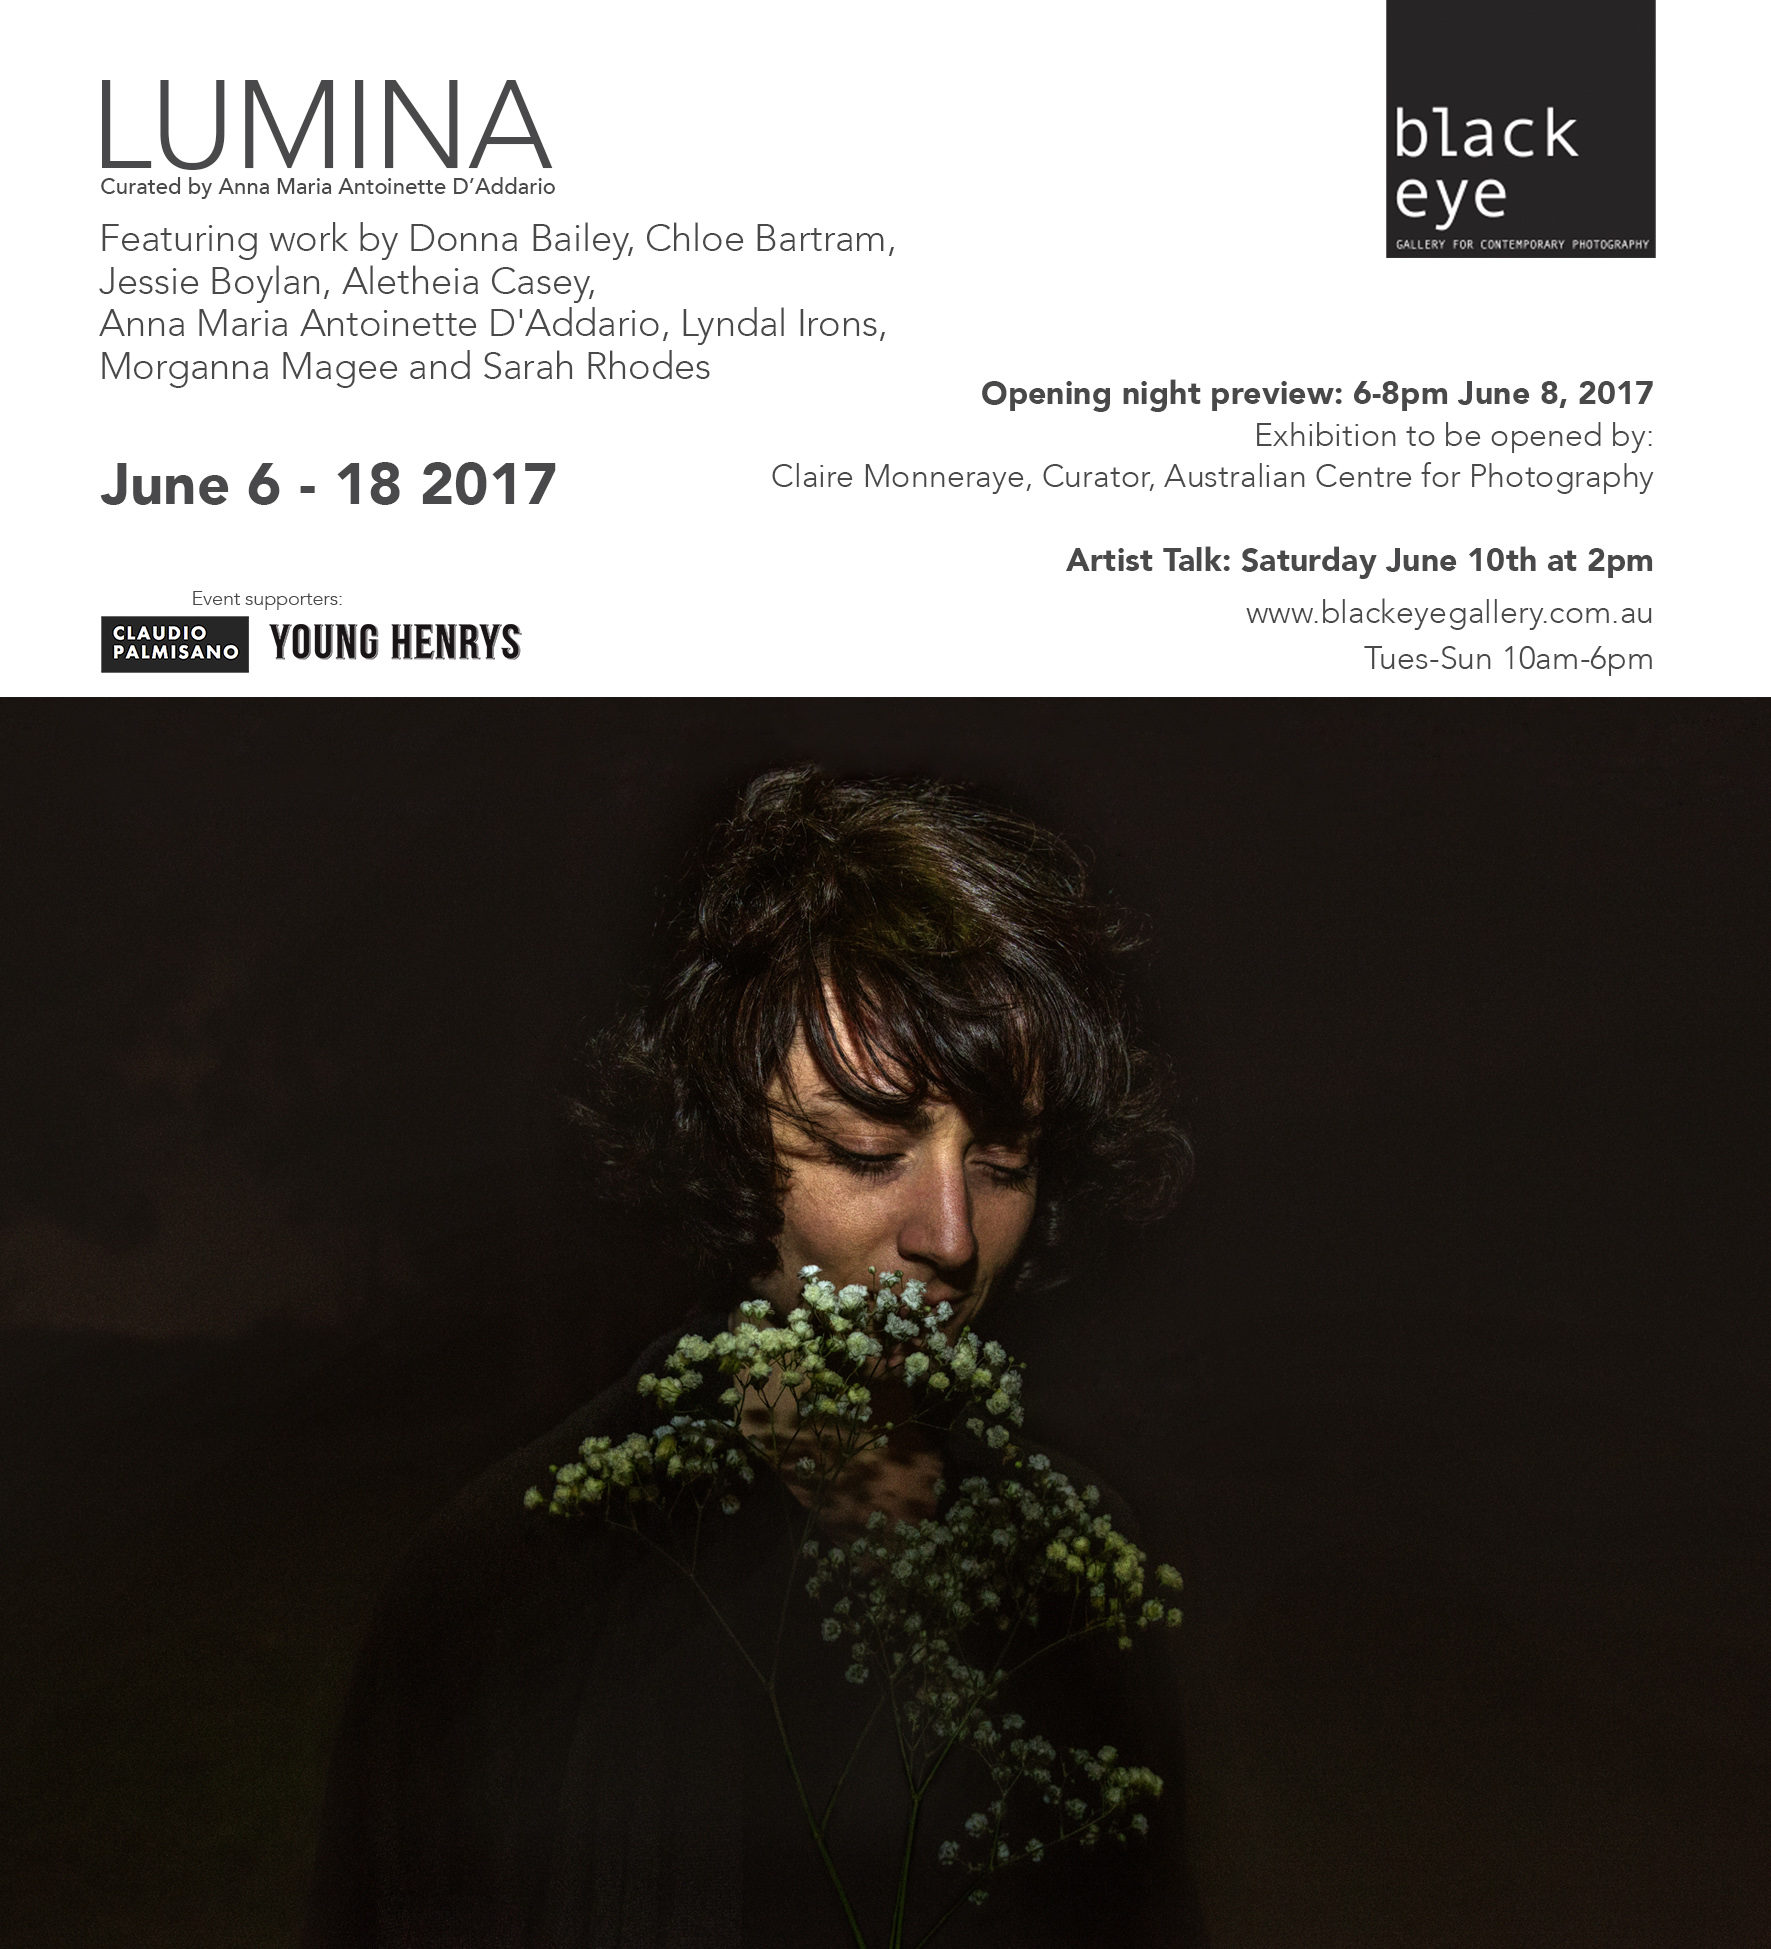 Lumina Collective Exhibition and Launch   Lumina is a new Australian collective of award winning photographic artists intent on breaking ground in visual storytelling and dissemination.  Founded by eight women who are leading practitioners in the documentary genre, Lumina marks a unique voice among Australian collectives.  Launching officially June 8, 2017 we are excited to announce our debut, self-titled exhibition opening the same day 6-8pm at  Black Eye Gallery , Darlinghurst in Sydney.  To be opened by Claire Monneraye , Curator for the  Australian Centre for Photography .  Opening Night: JUNE 8, 2017 6-8pm  Refreshments provided by  Young Henrys   www.blackeyegallery.com.au/future-shows/    luminacollective.com.au   Lumina Collective founding members are: Donna Bailey, Jessie Boylan, Chloe Bartram, Aletheia Casey, Anna Maria Antoinette D'Addario, Lyndal Irons, Morgann